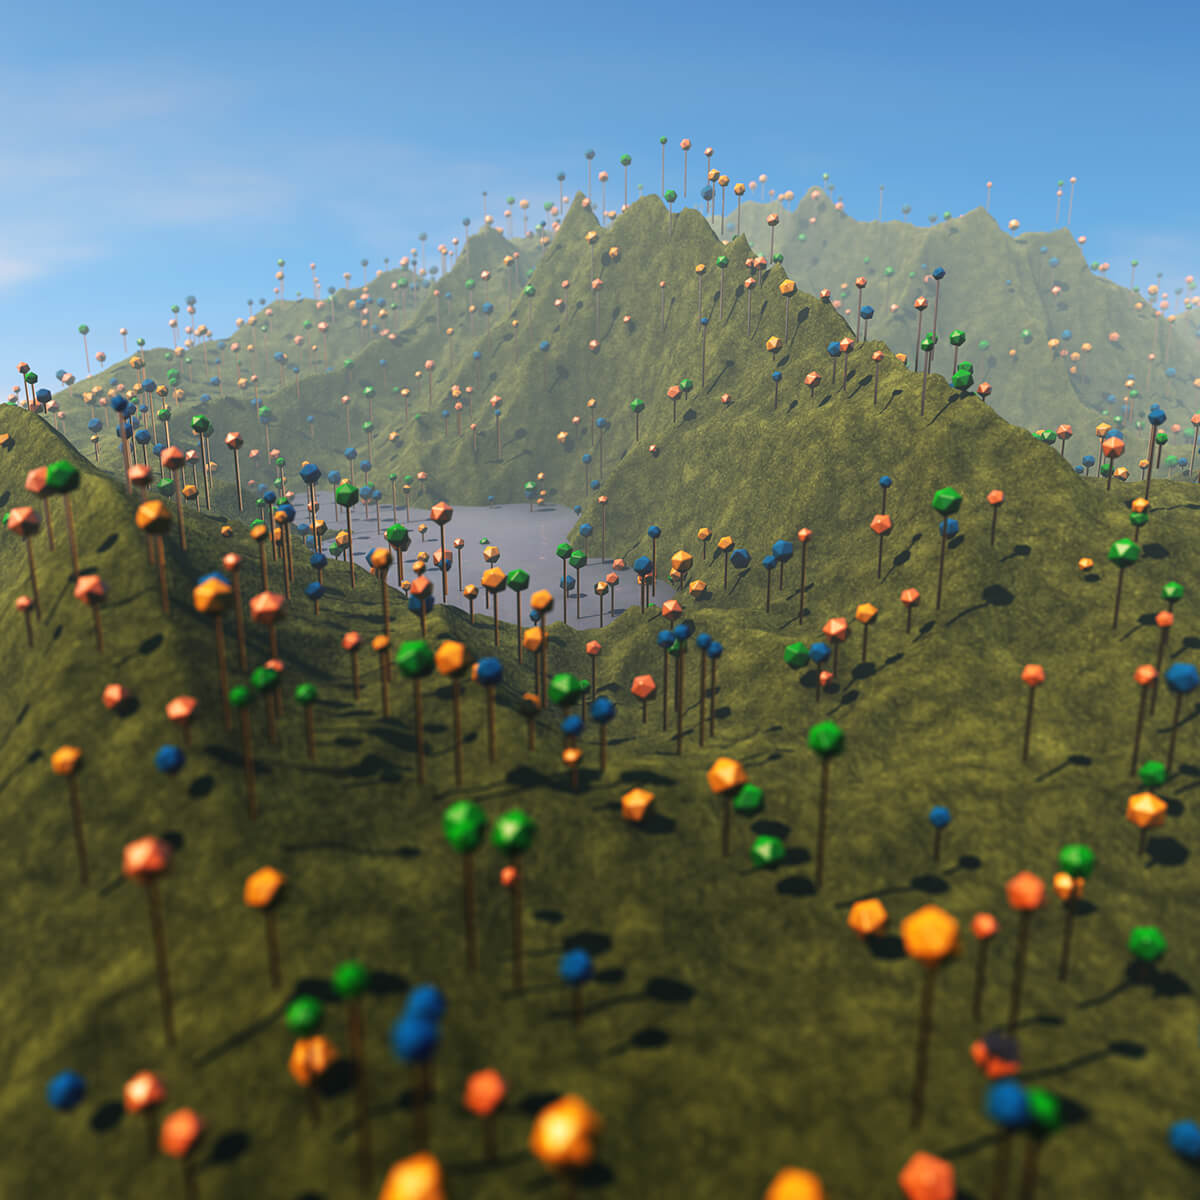 3D render of realistic landscape filled with cartoony hexagon trees